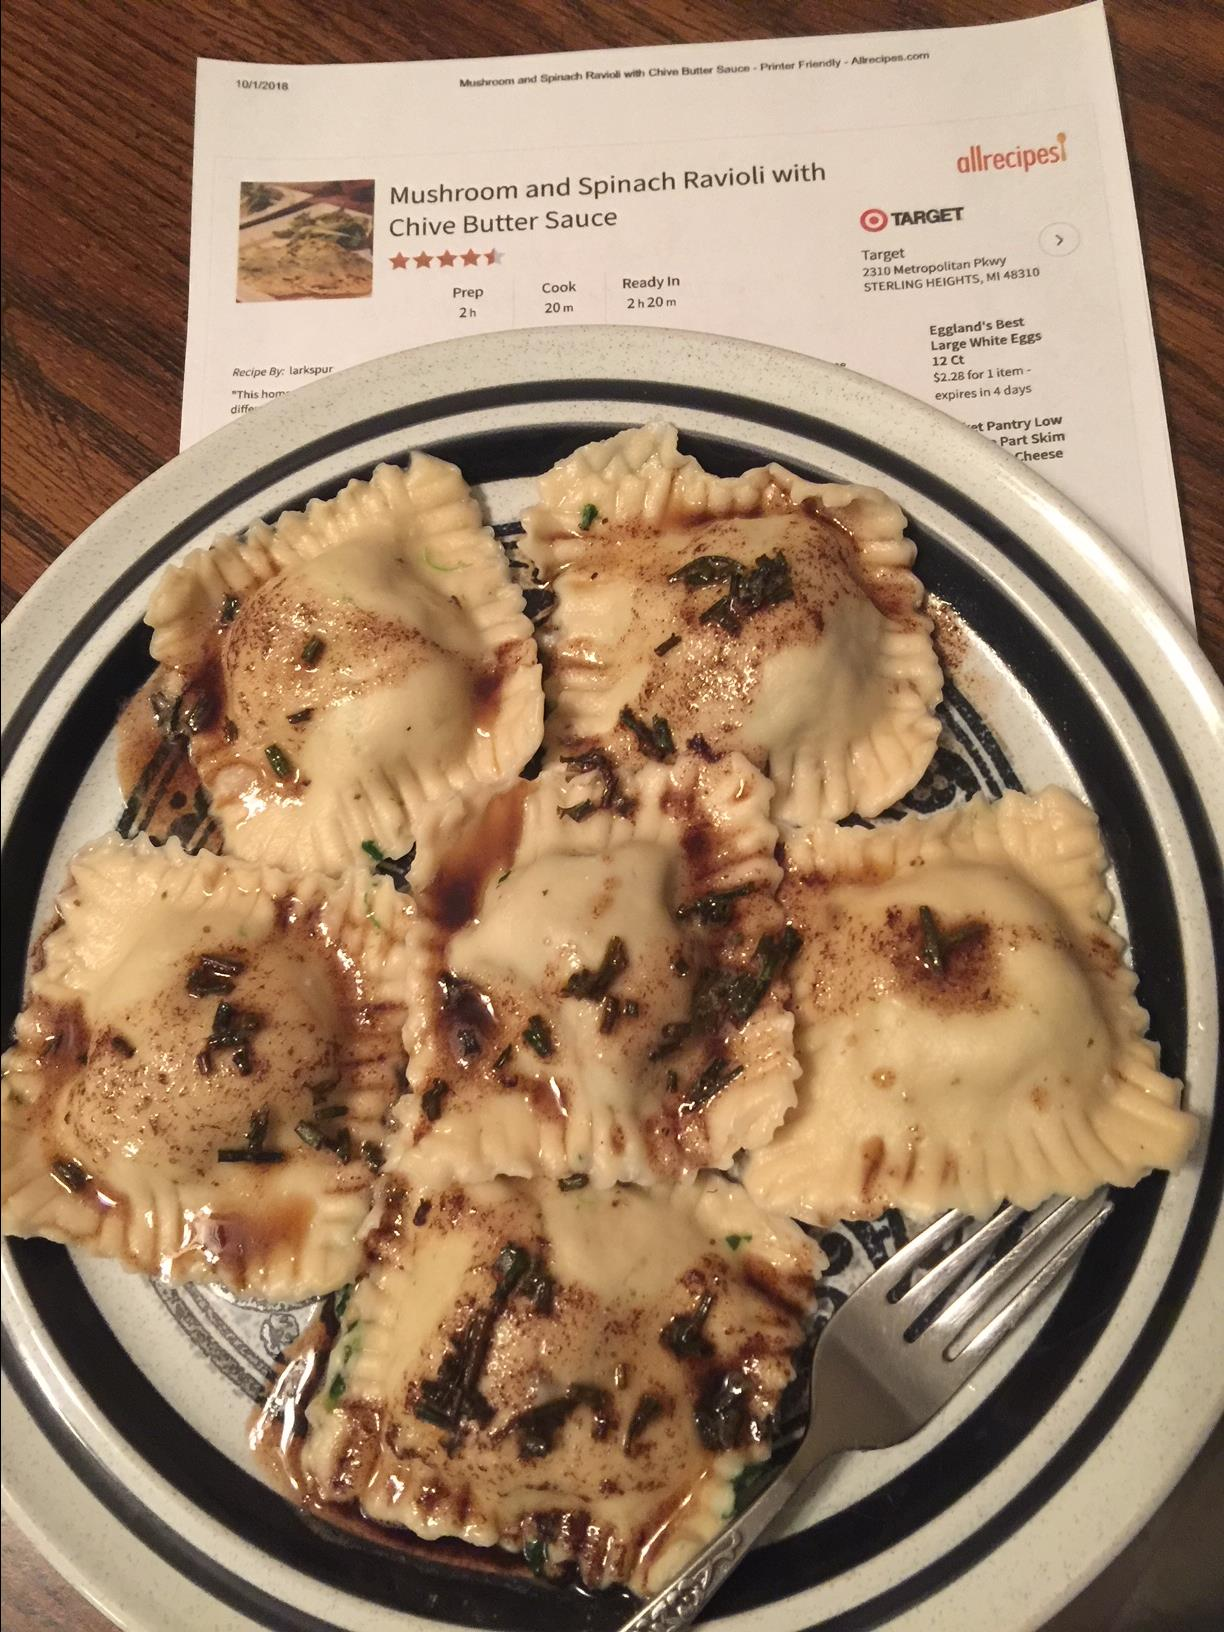 Mushroom and Spinach Ravioli with Chive Butter Sauce LuAnn Padgett